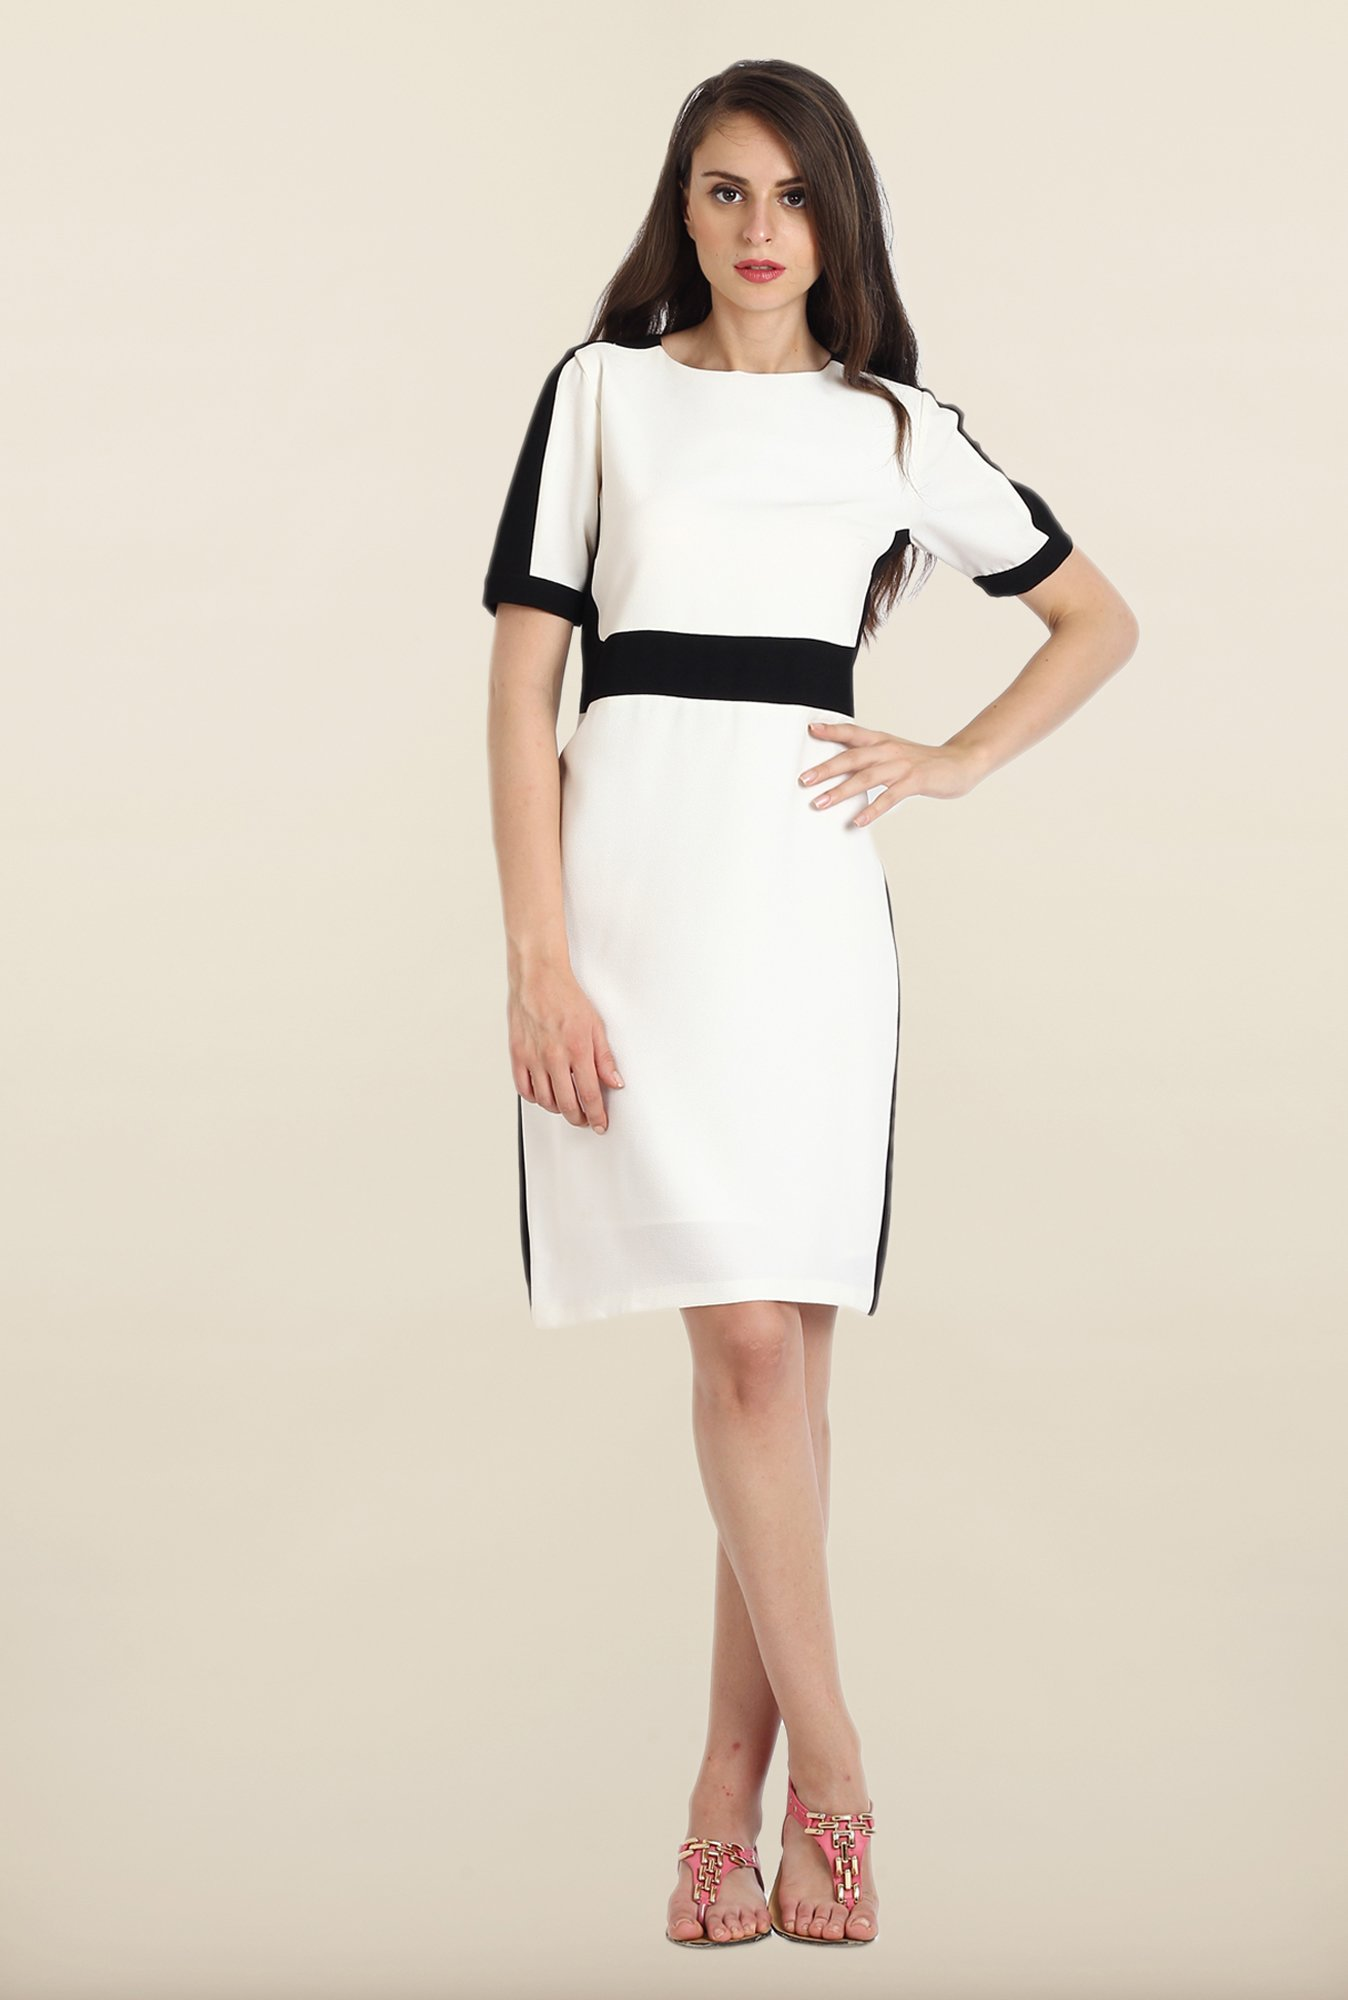 Avirate White Solid Half Sleeve Shift Dress